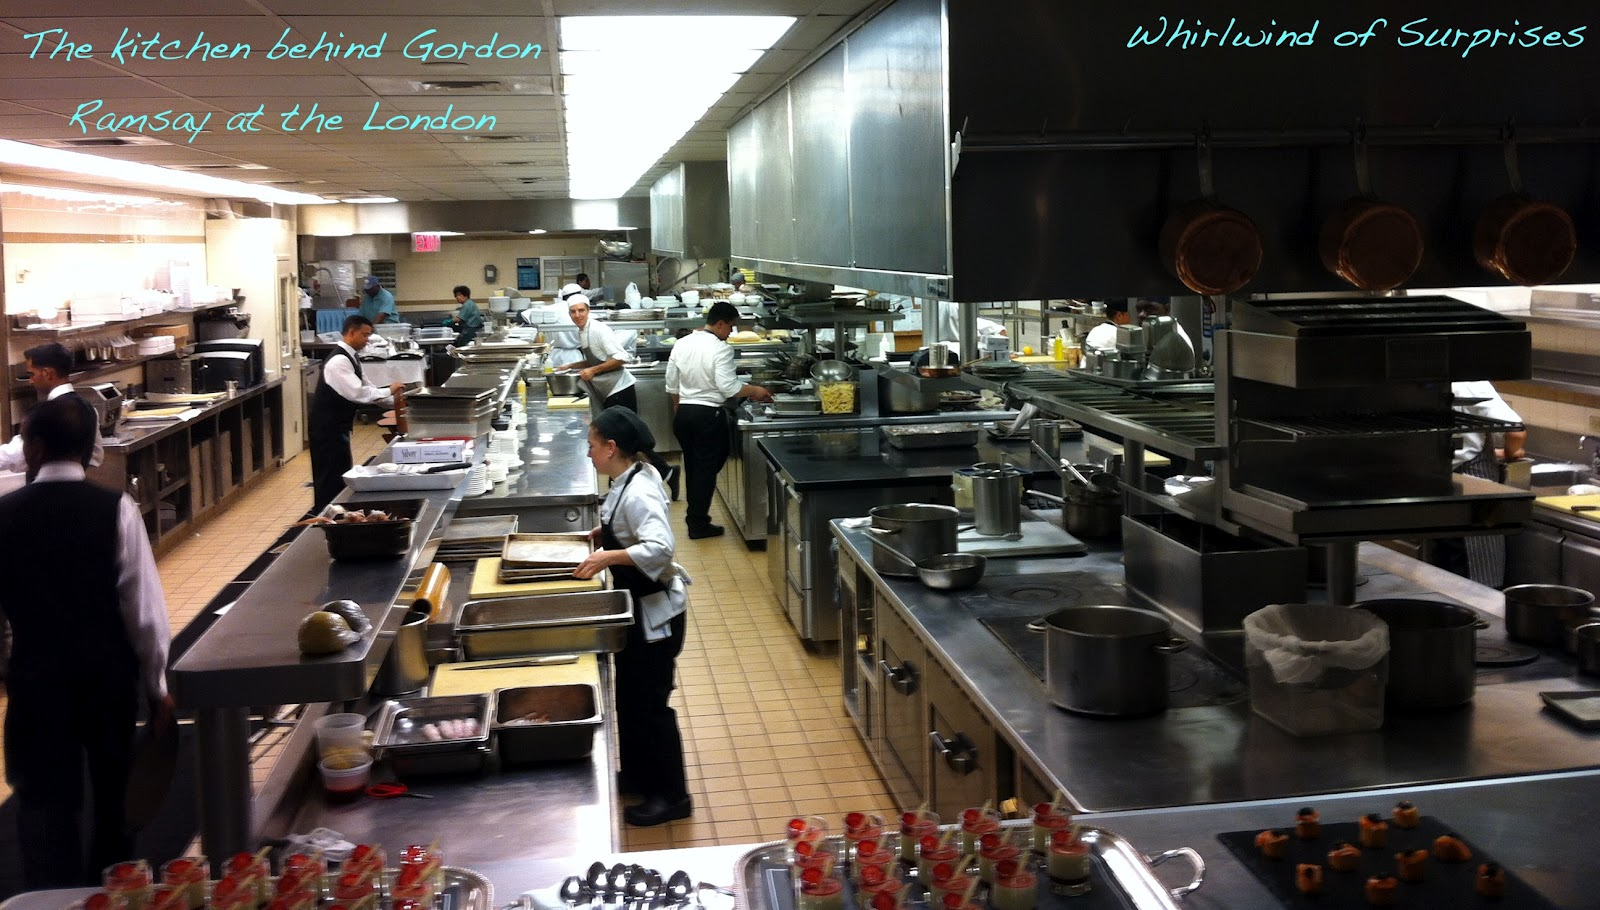 Whirlwind of surprises nyc foodie experiences for Gordon ramsay home kitchen